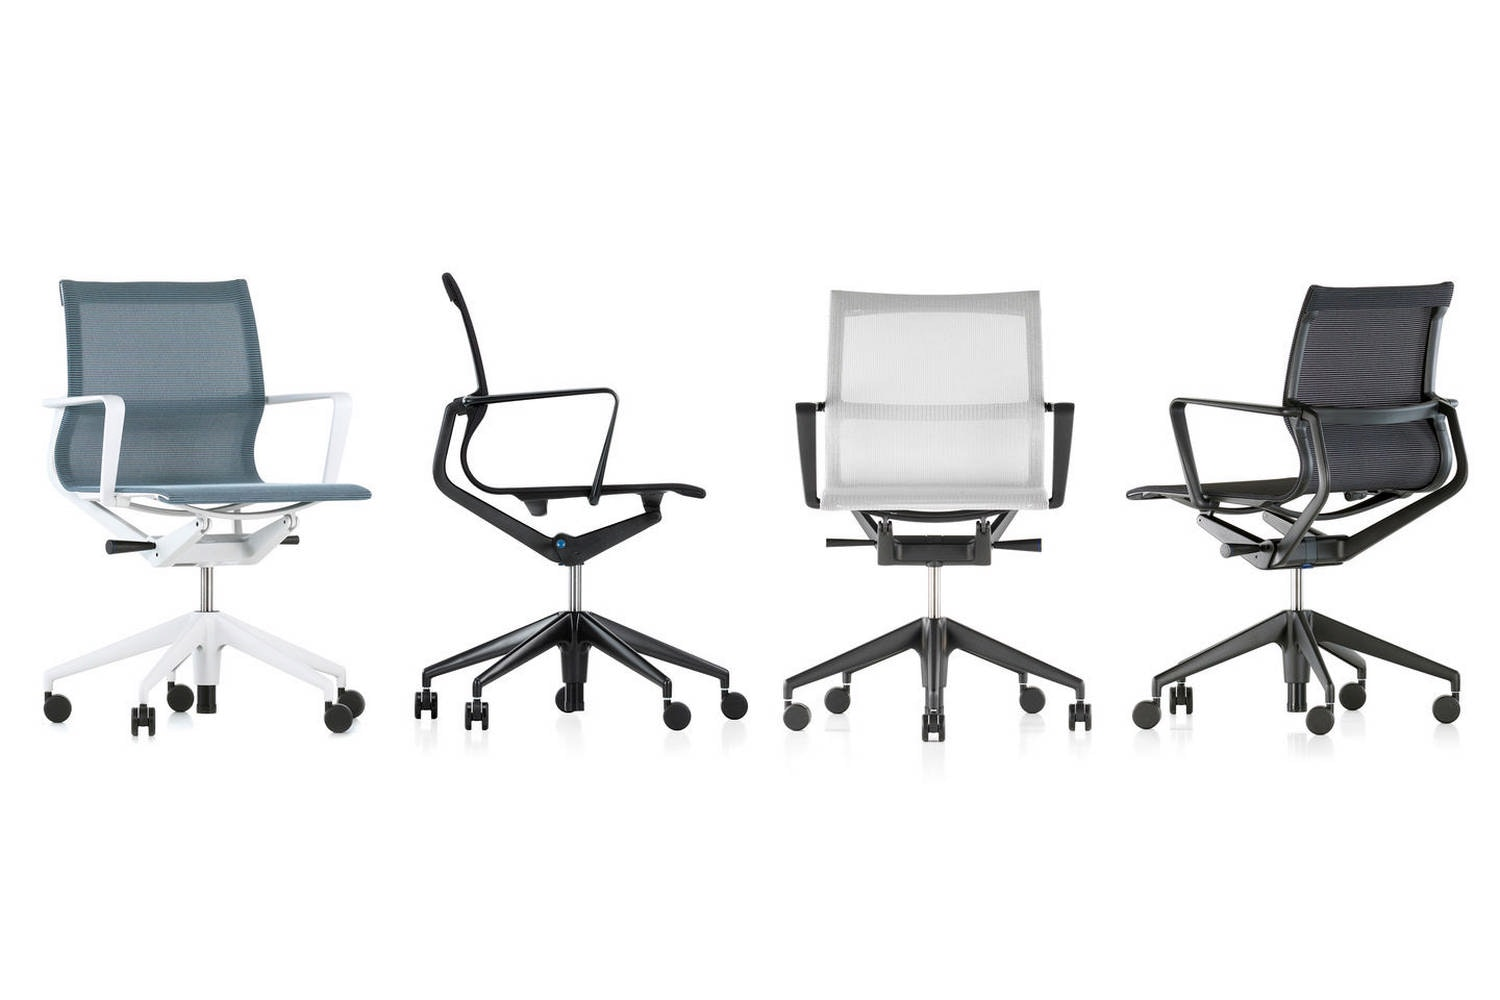 Physix Chair with Arms on Castors by Alberto Meda for Vitra